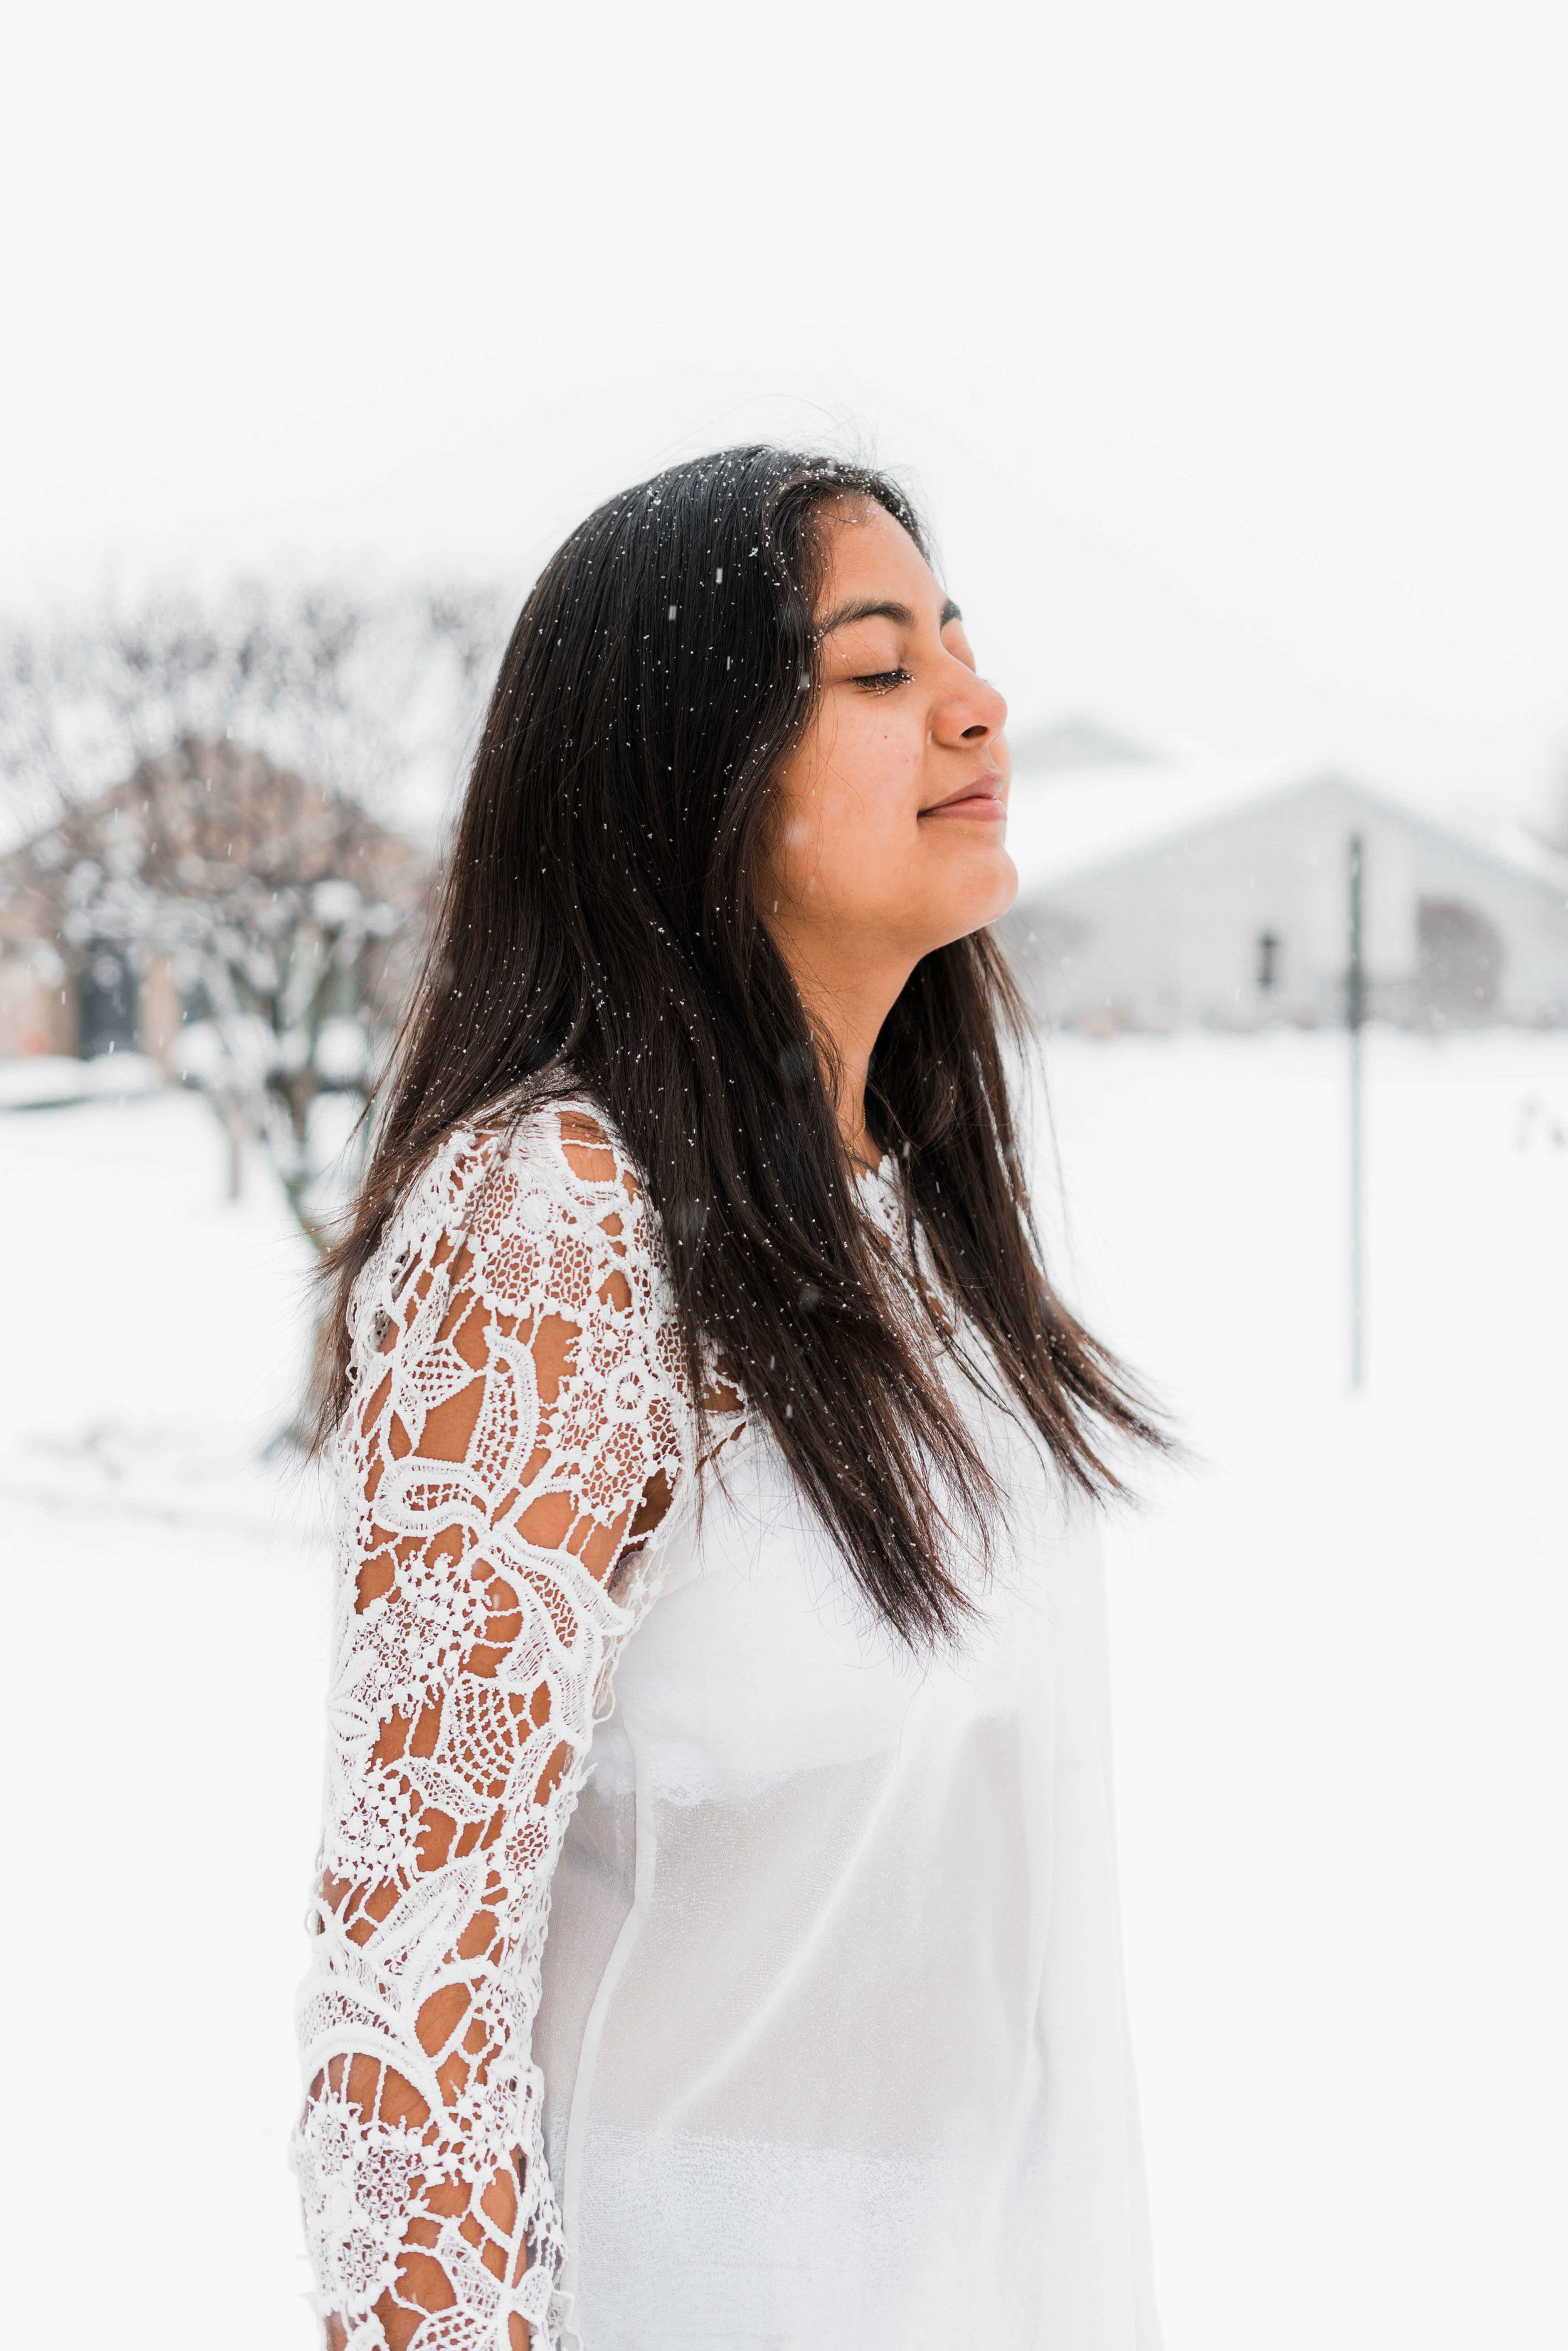 Photo Diary- Snowday in Indiana!   Photoshoot ideas and Photography